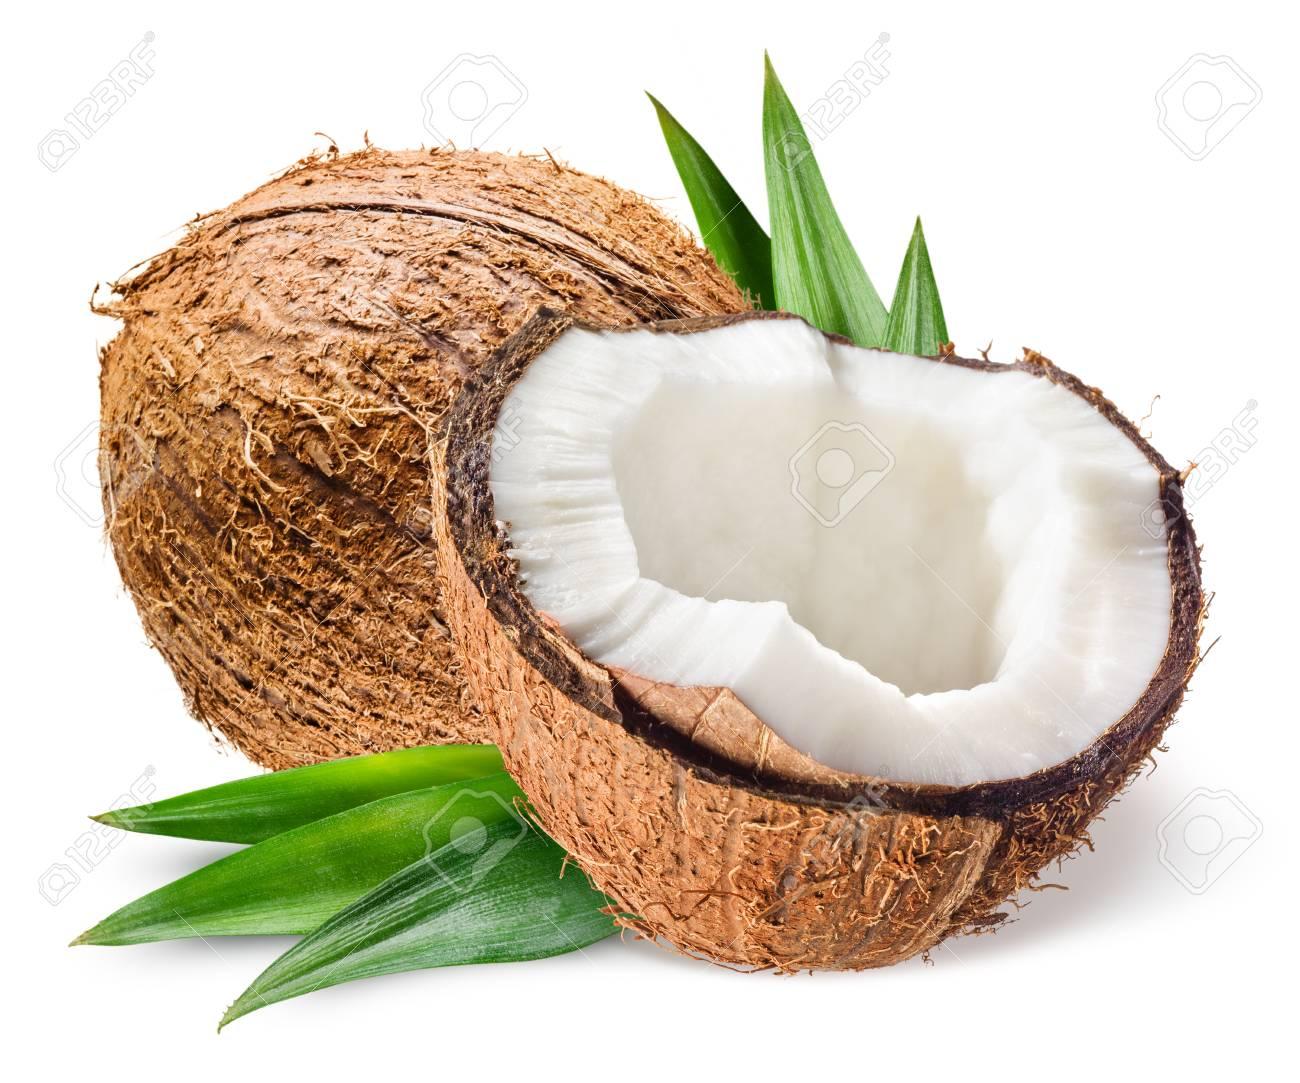 Coconut with half and leaves on white background - 86563904